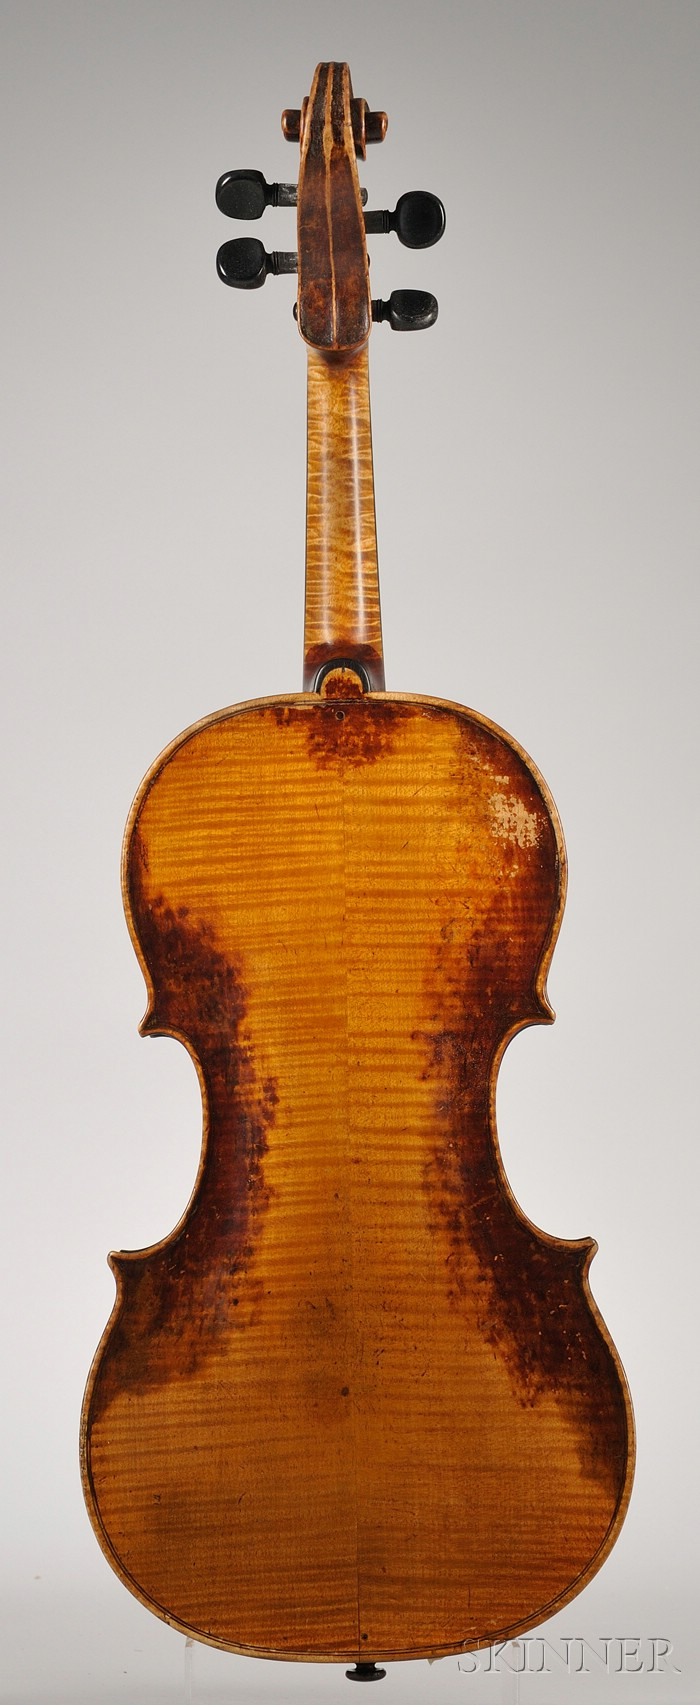 Tyrolean Violin, c. 1850, Ascribed to Matteo Albani